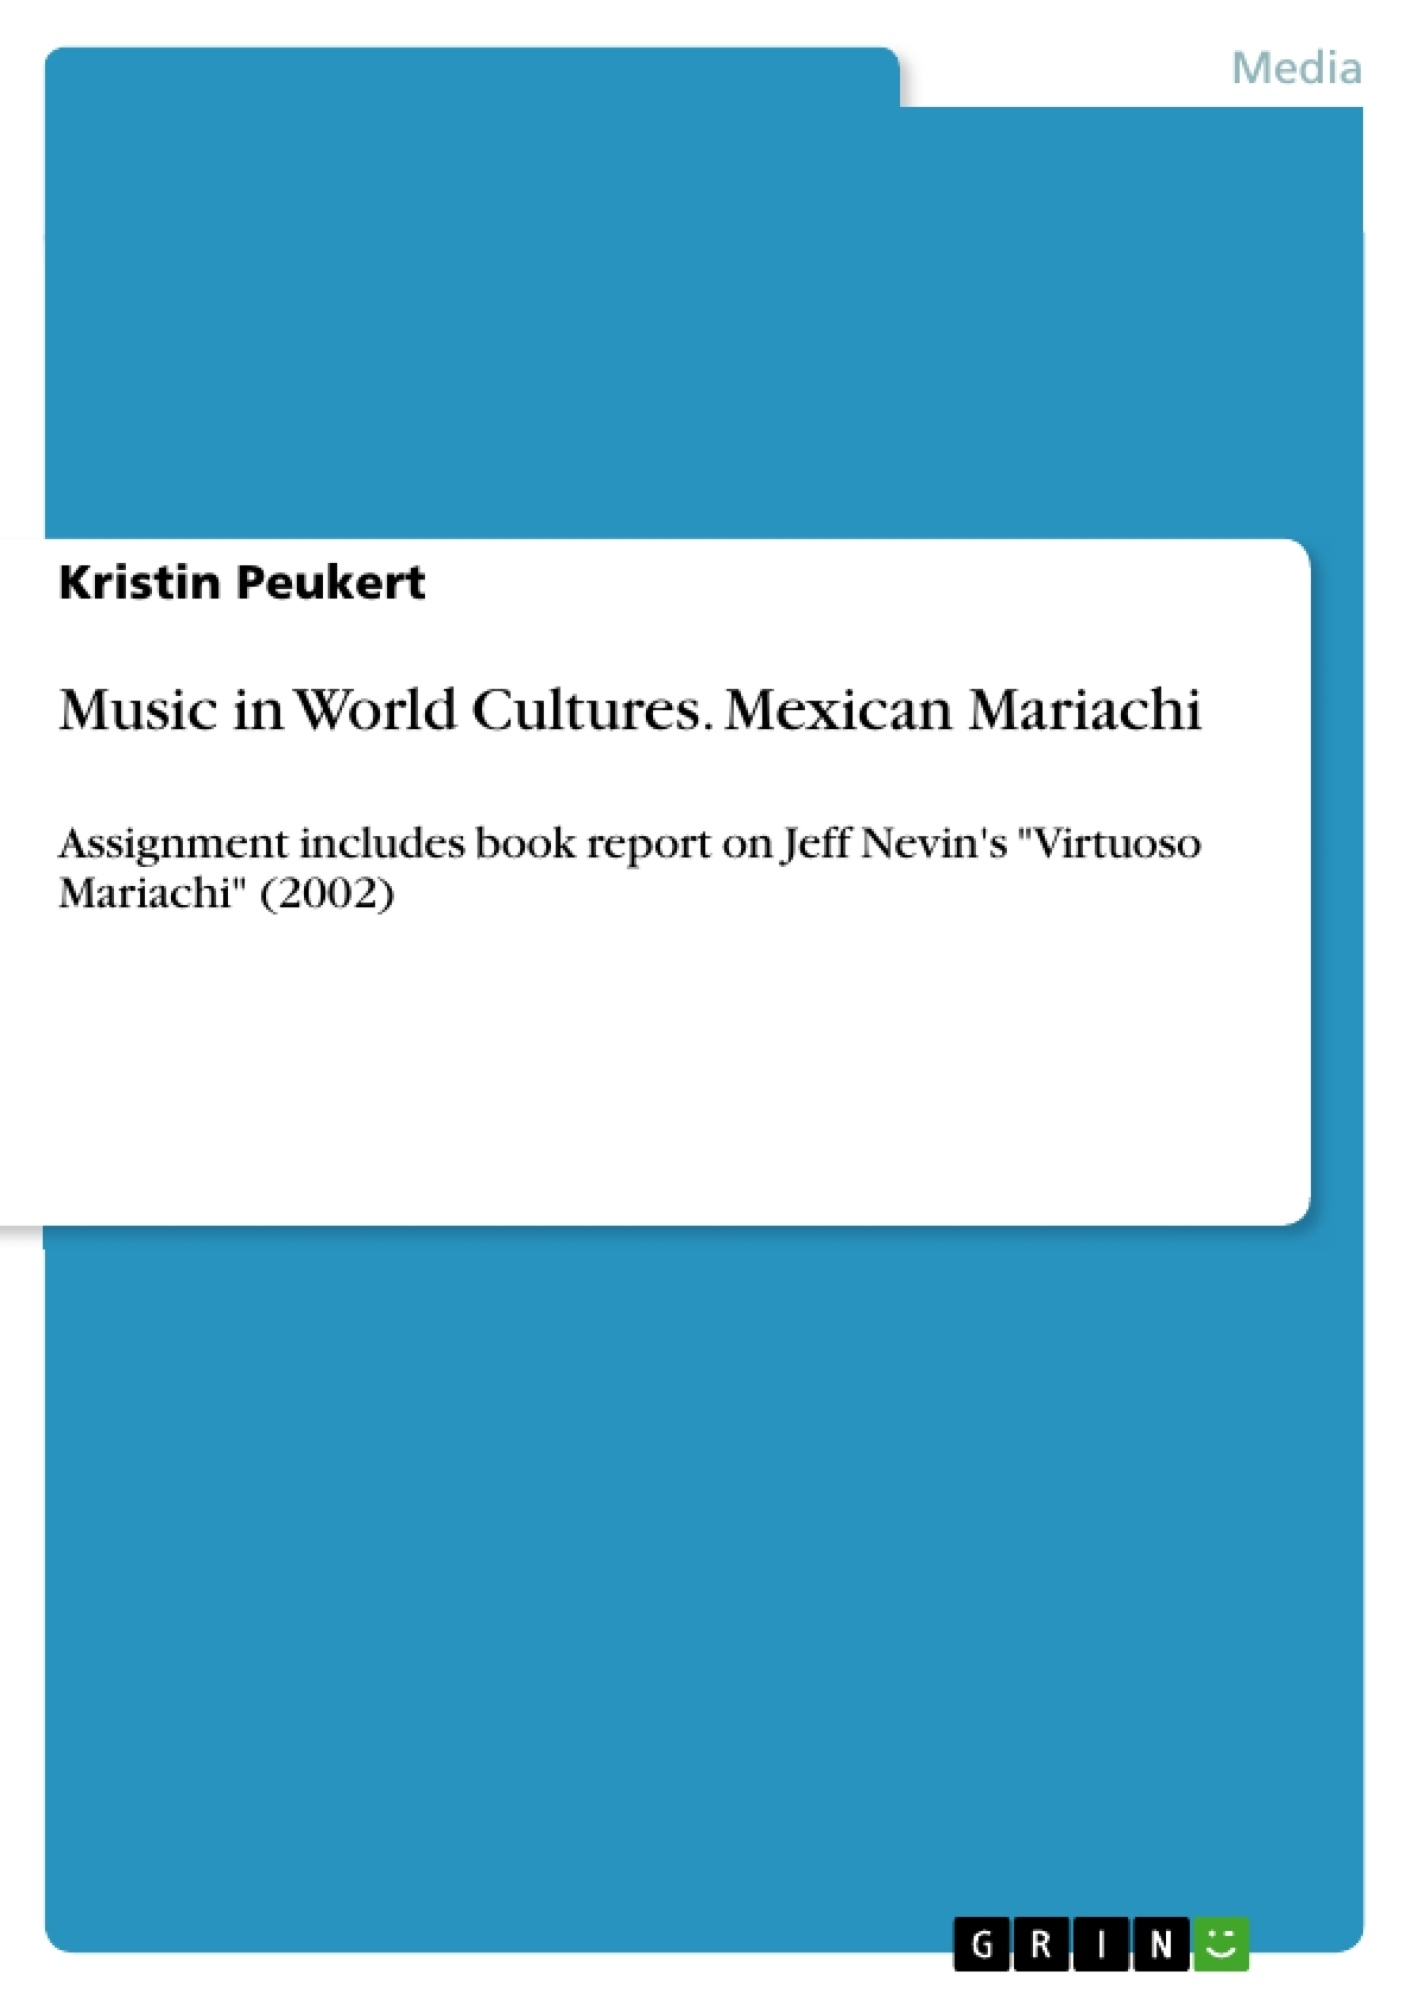 Title: Music in World Cultures. Mexican Mariachi